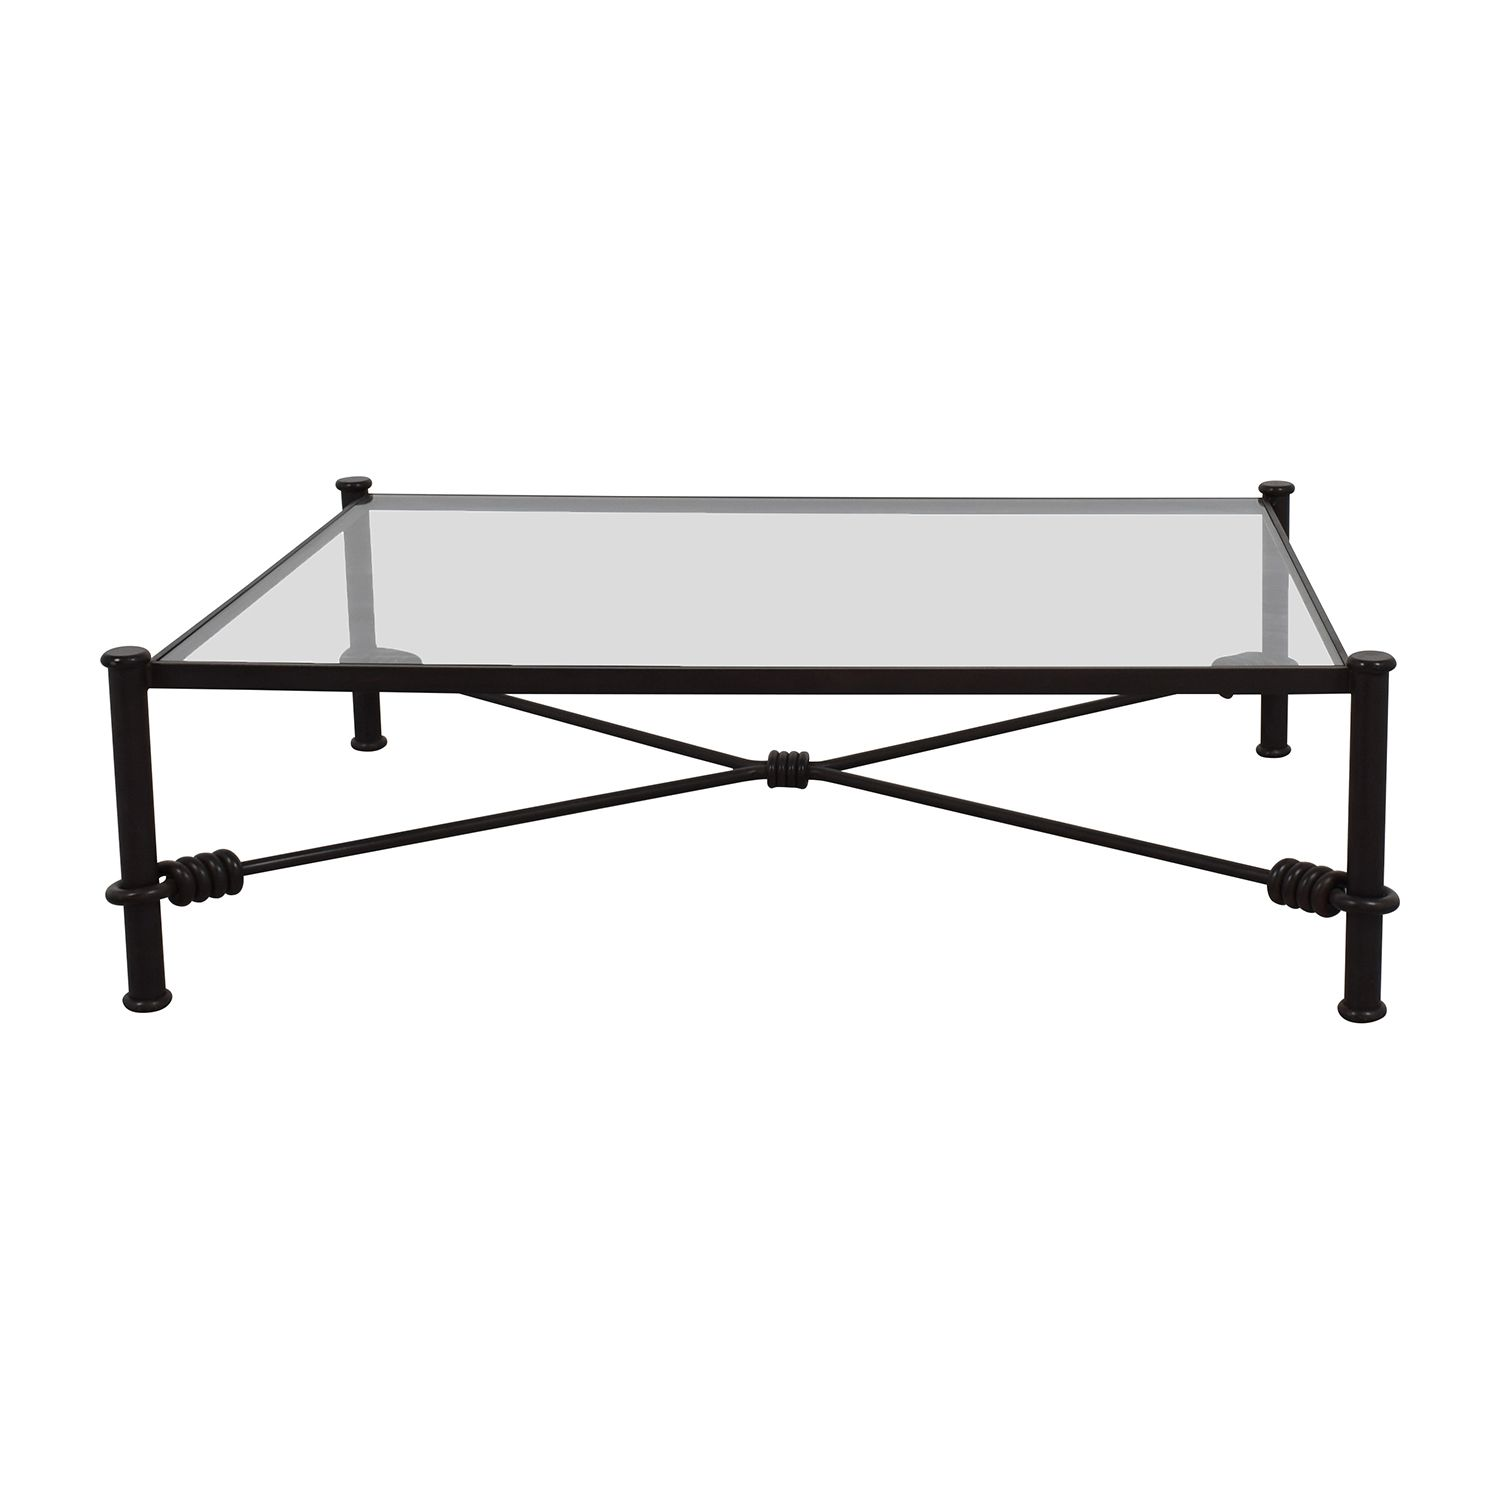 Best Black Wrought Iron Glass Coffee Table Iron Coffee Table 400 x 300